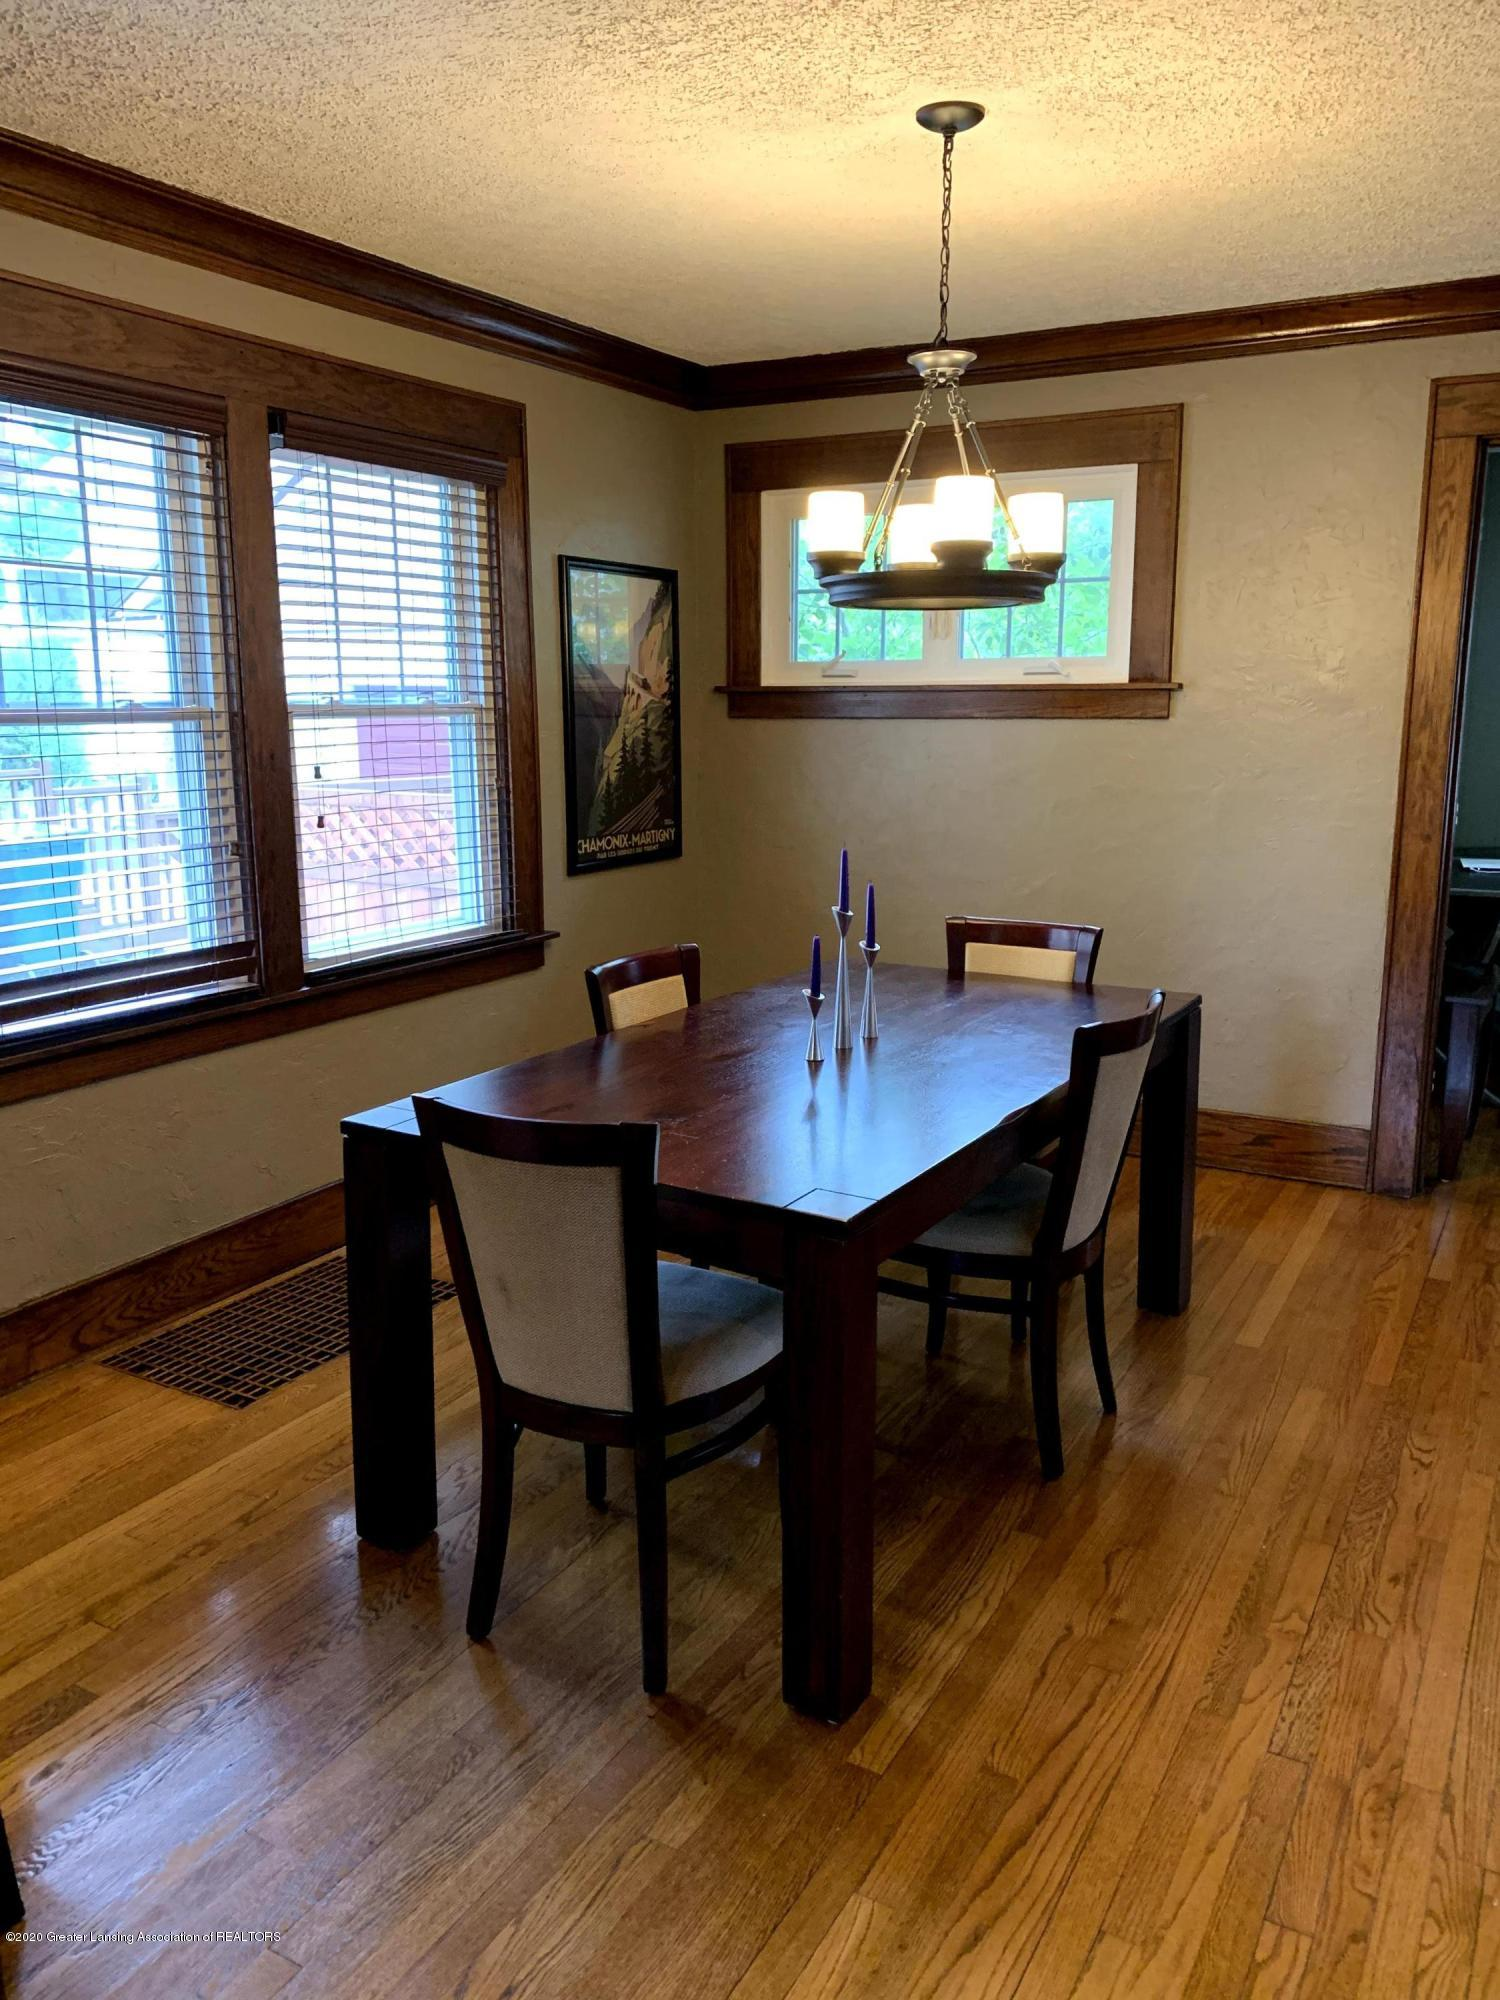 523 N Jenison Ave - Dining room - 11